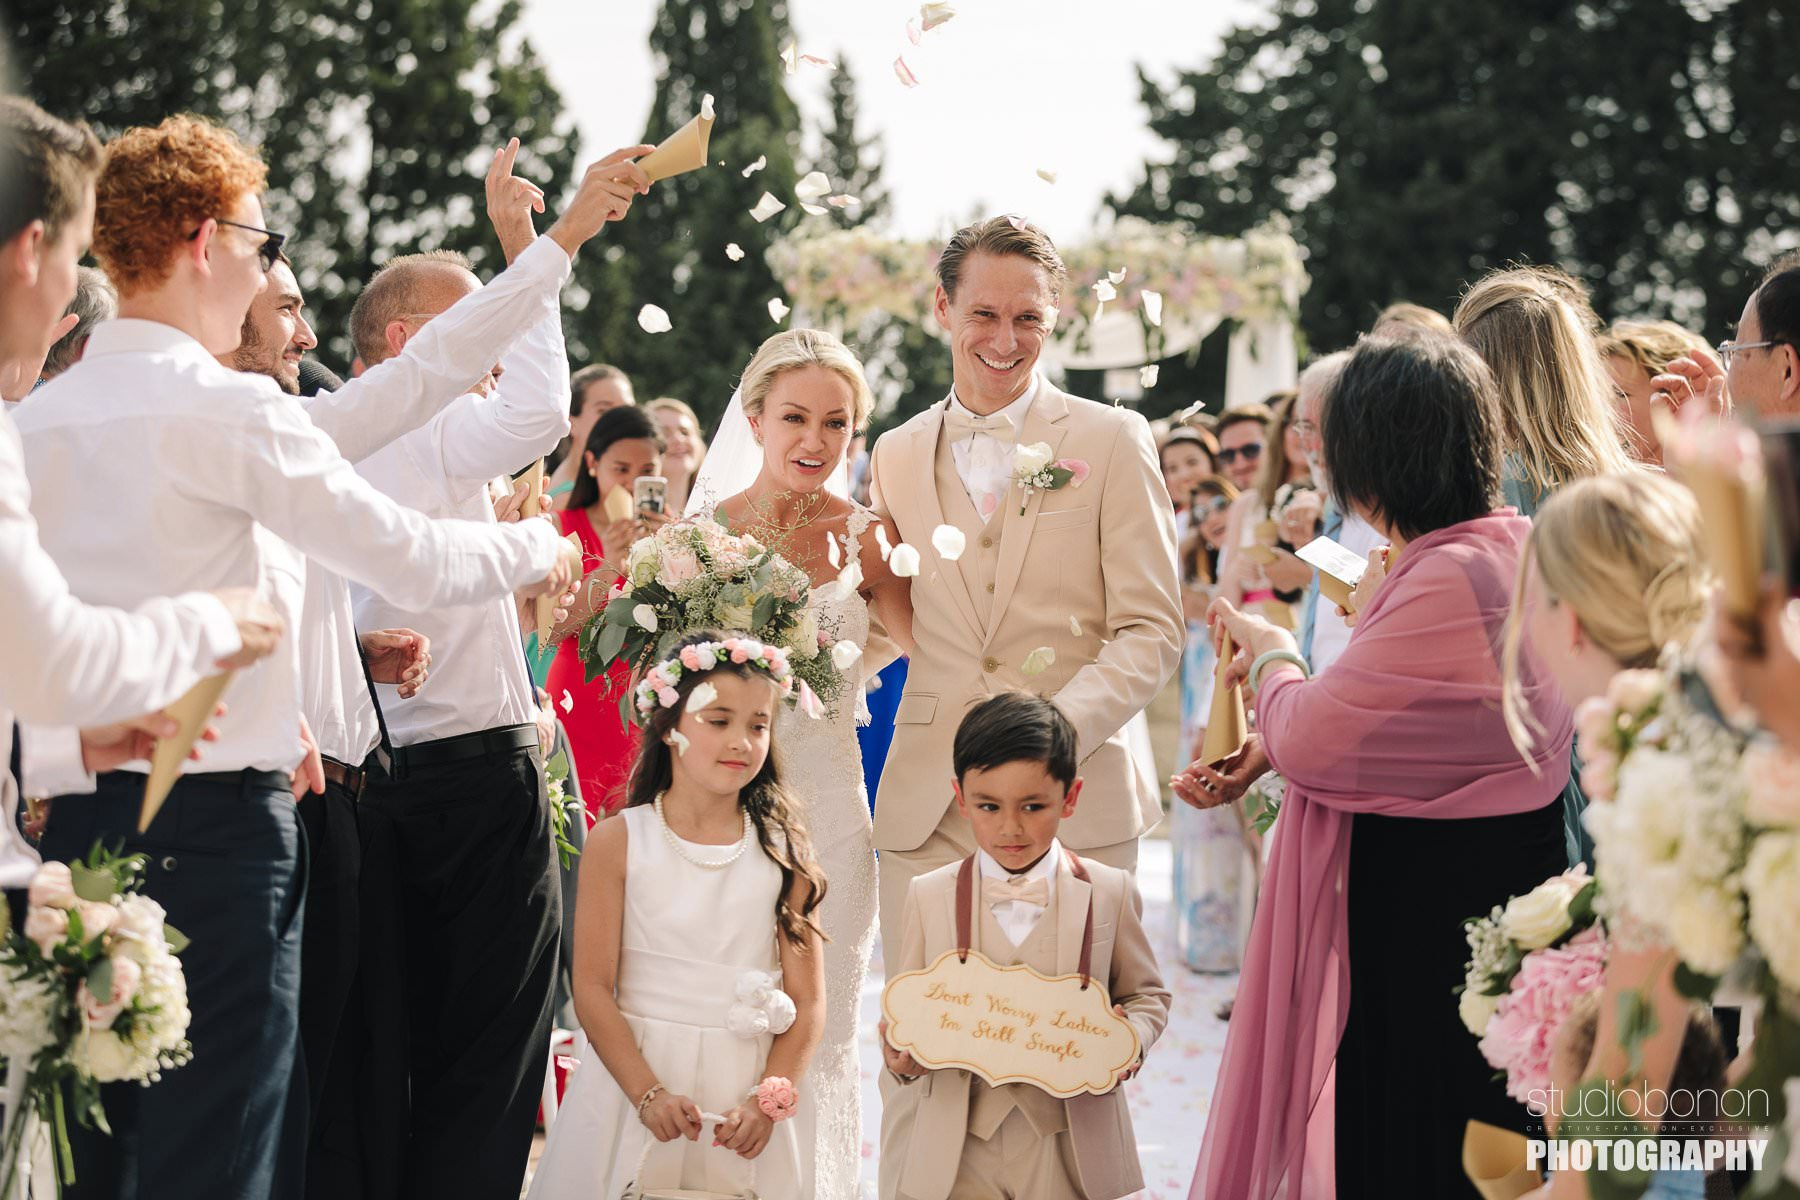 Petal throwing for bride and groom in this elegant and beautiful destination wedding in Tuscany countryside at Vincigliata Castle